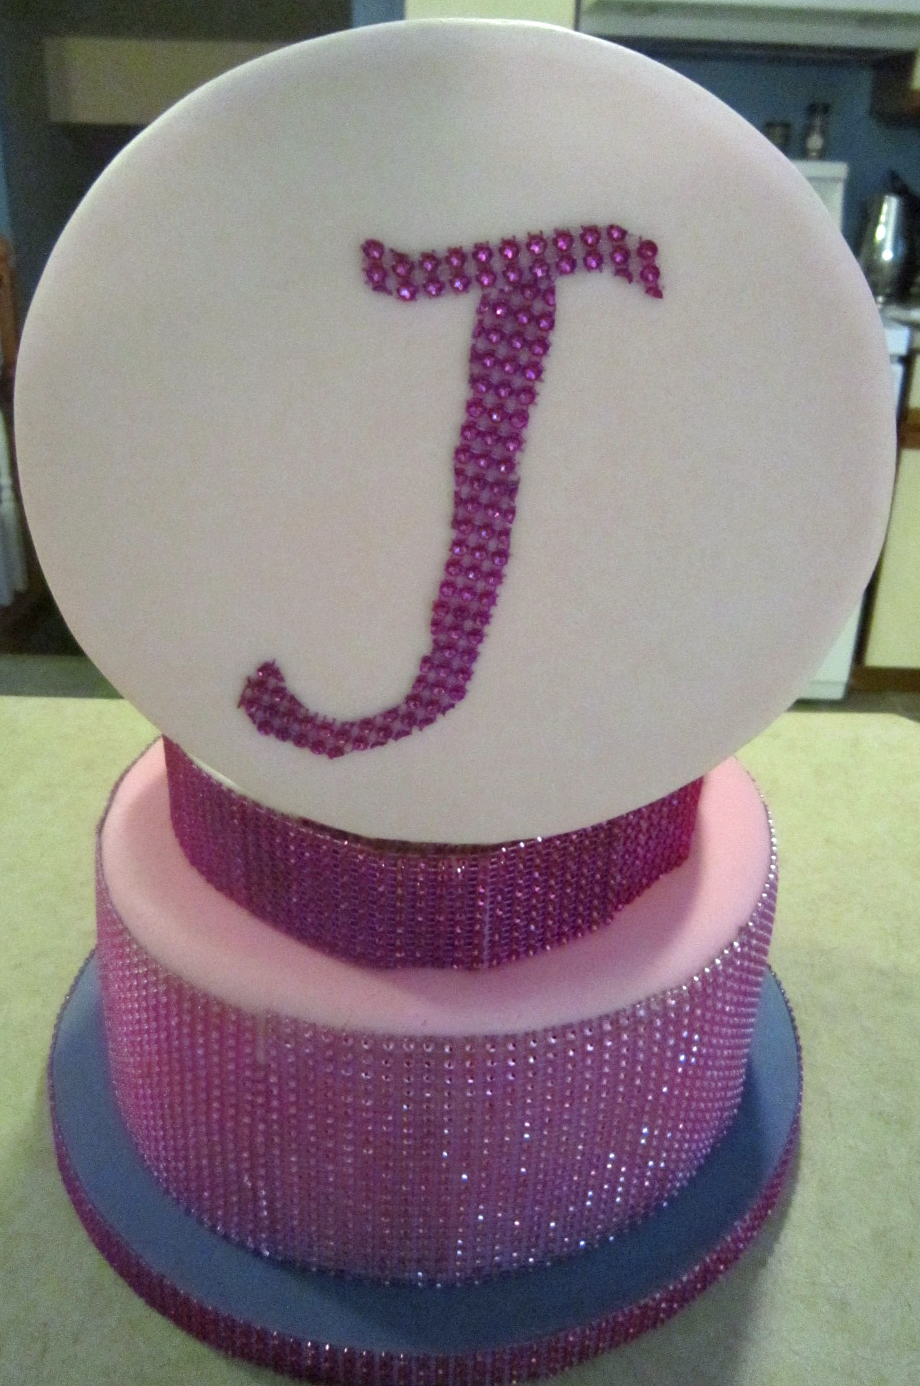 Images Of Cake For Niece : A 9Th Birthday Cake For My Niece Its One Layer Strawberry ...